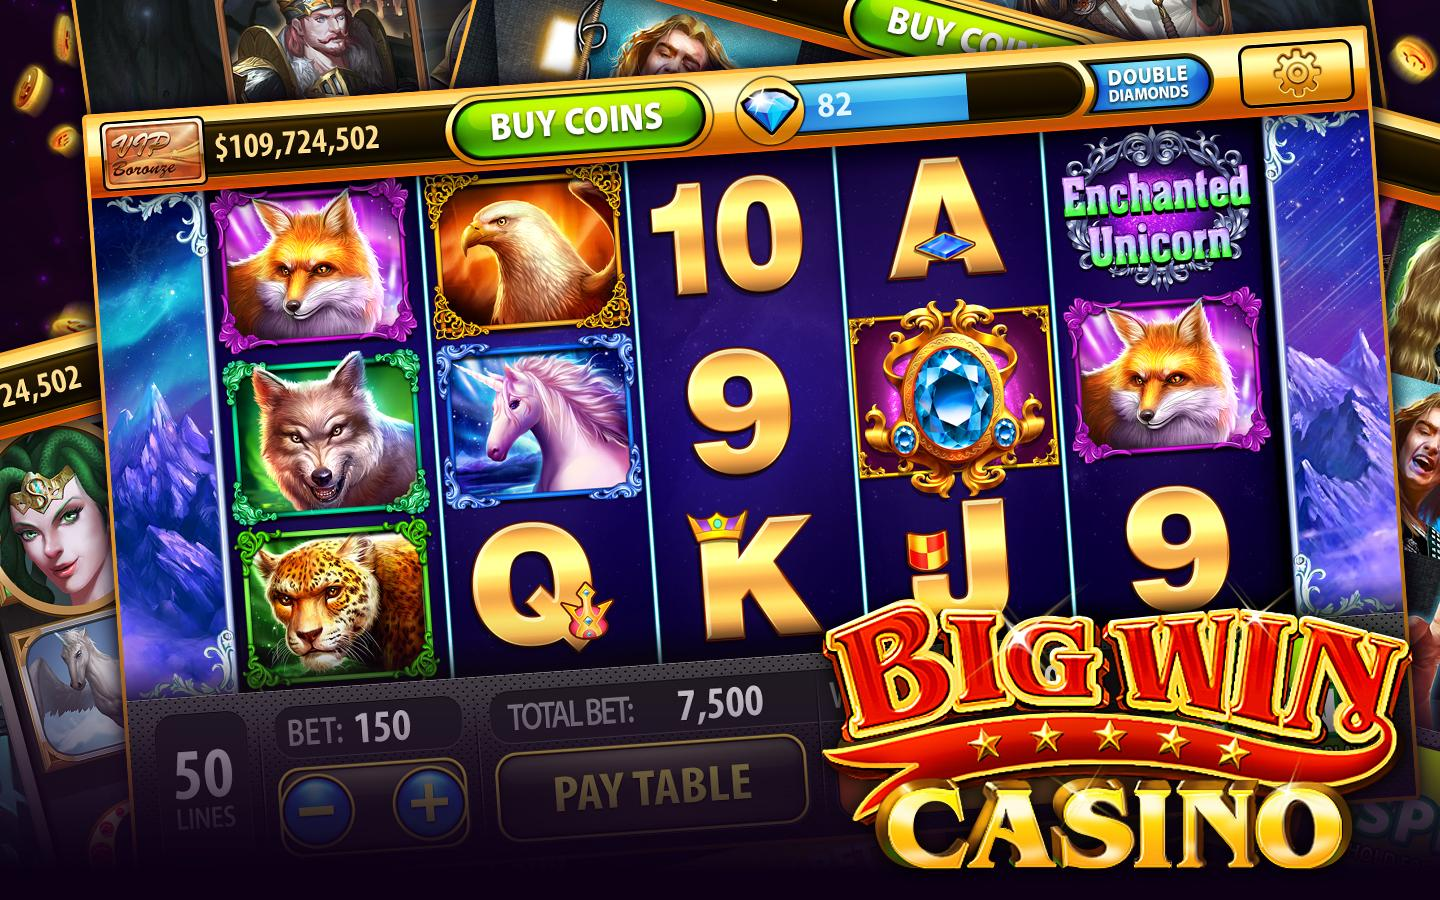 Casino games | Euro Palace Casino Blog - Part 57